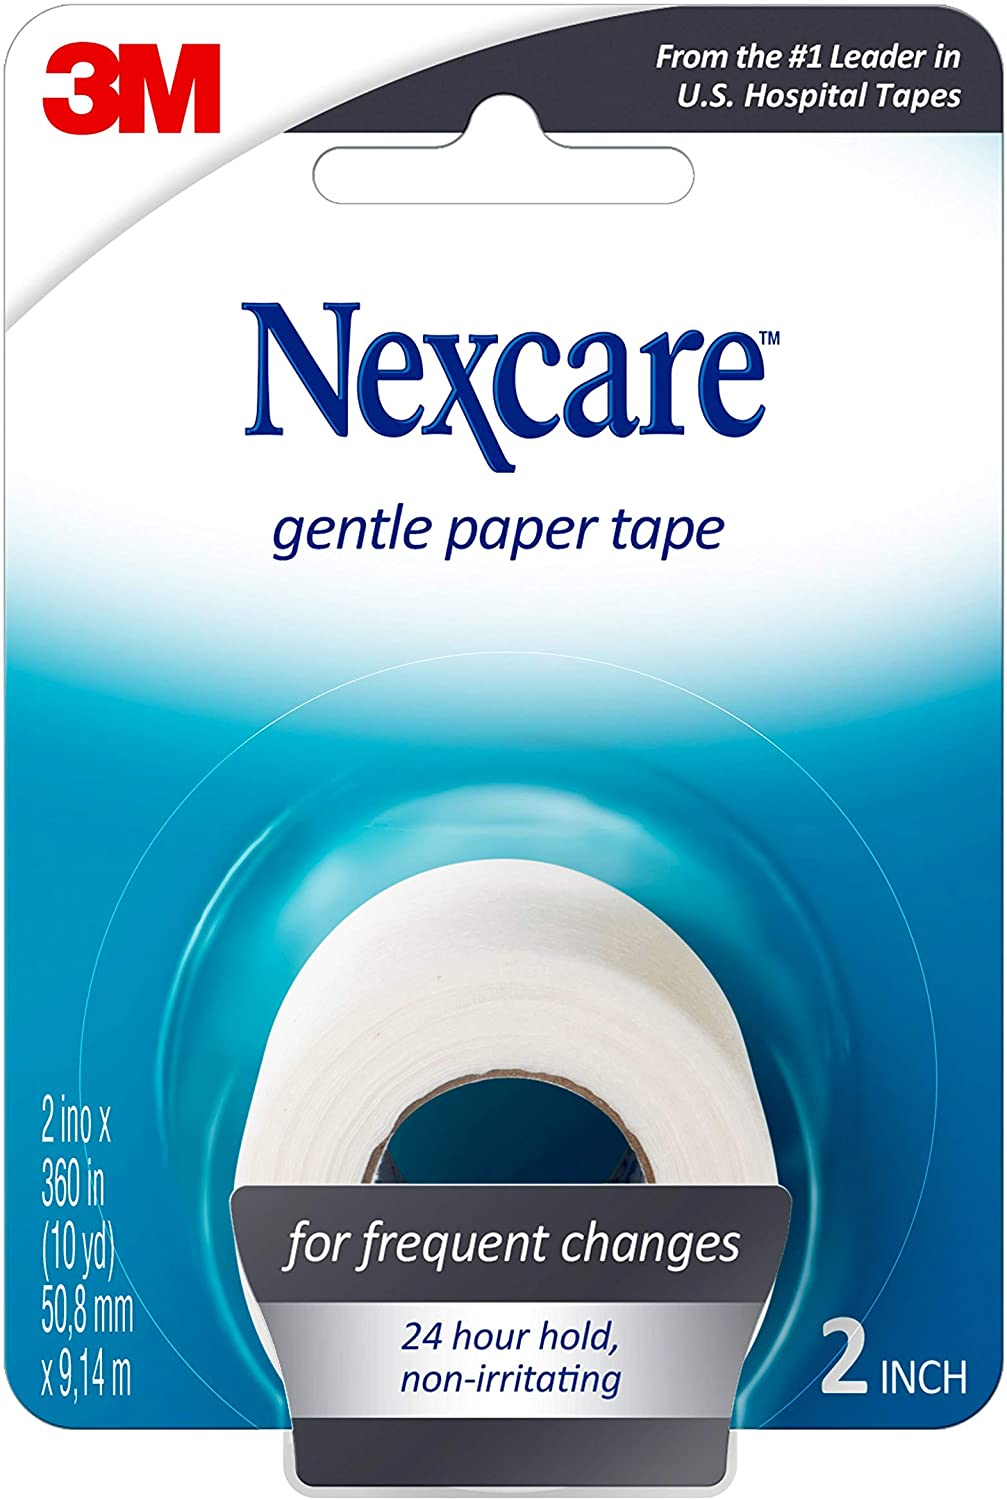 Nexcare Gentle Paper First Aid Tape Pack of 4 0.09 Pound Dispenser 3//4 Inches X 8 Yards